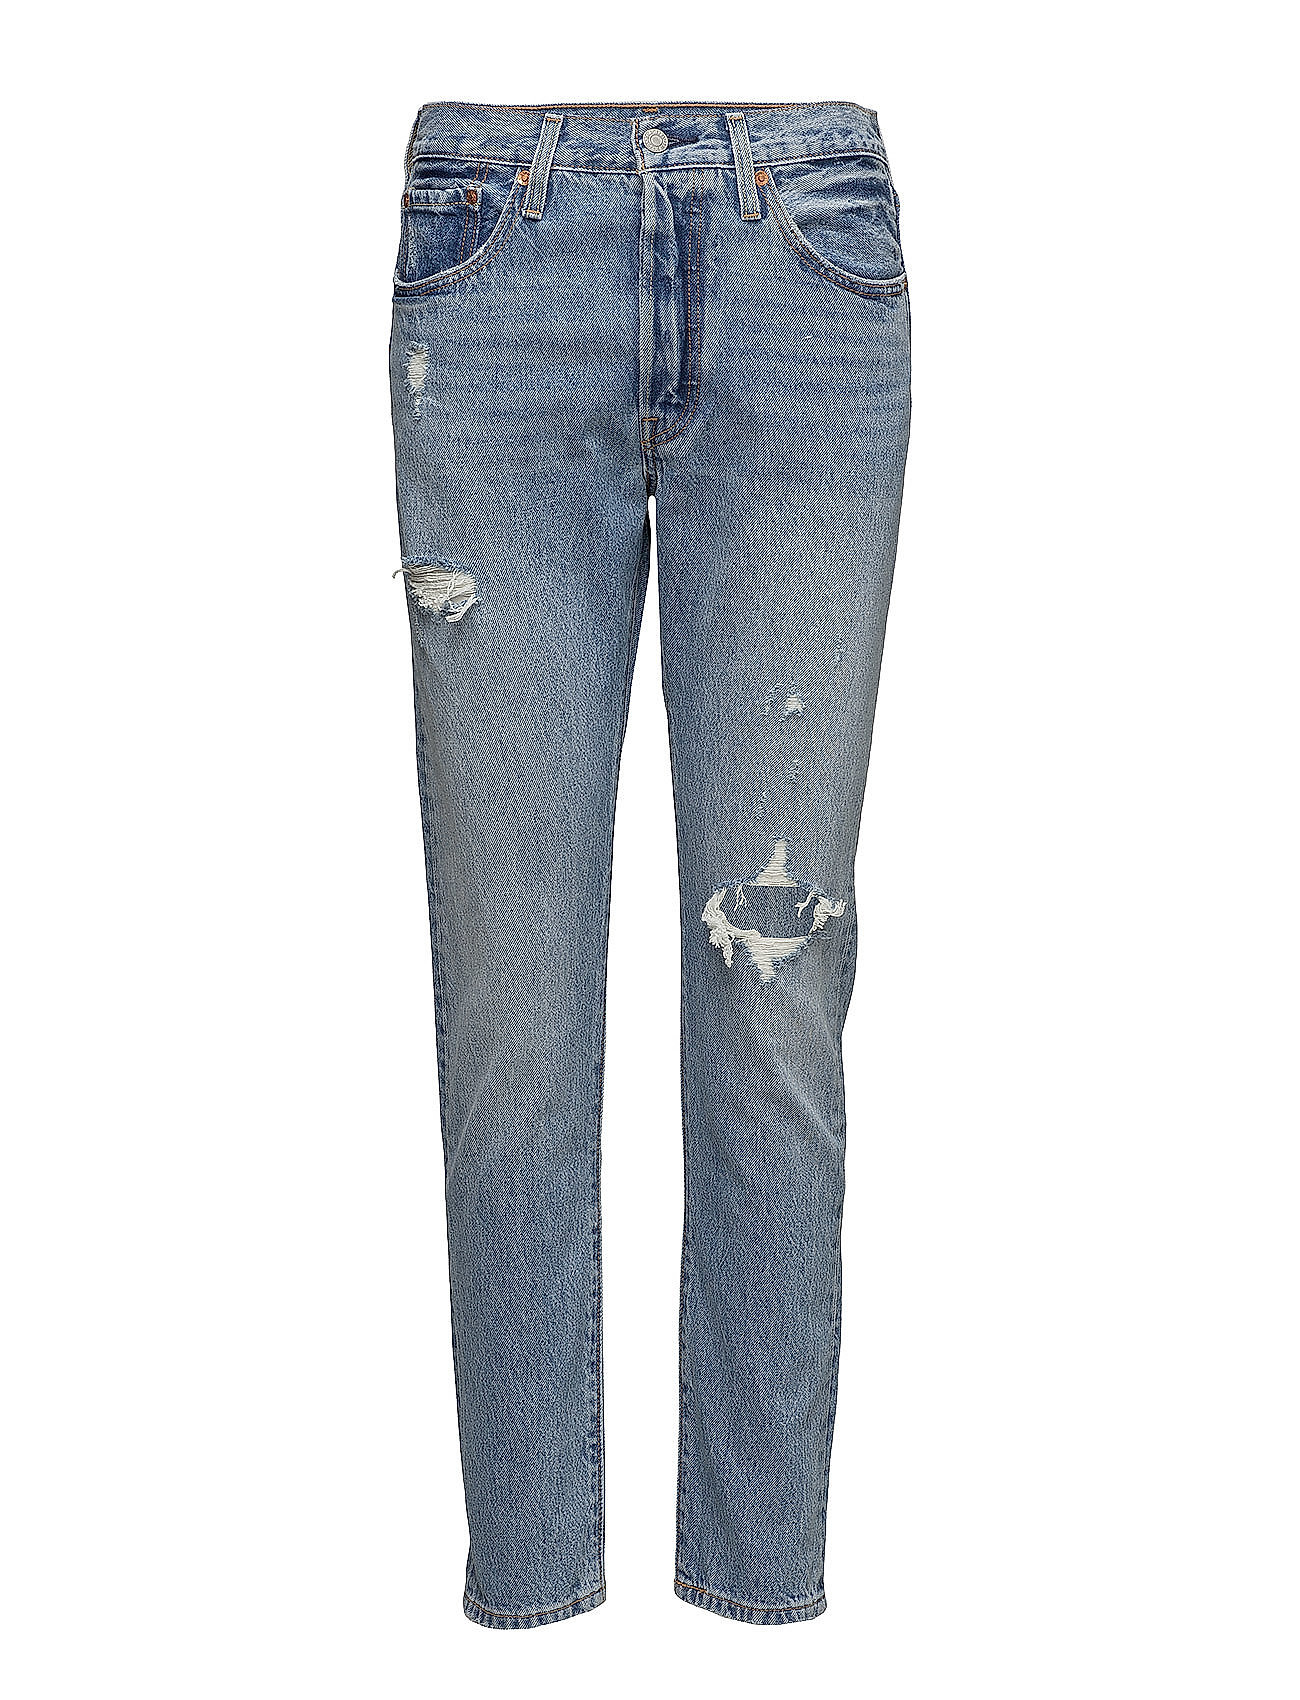 Jeans im Sale - 501 Skinny Cant Touch This